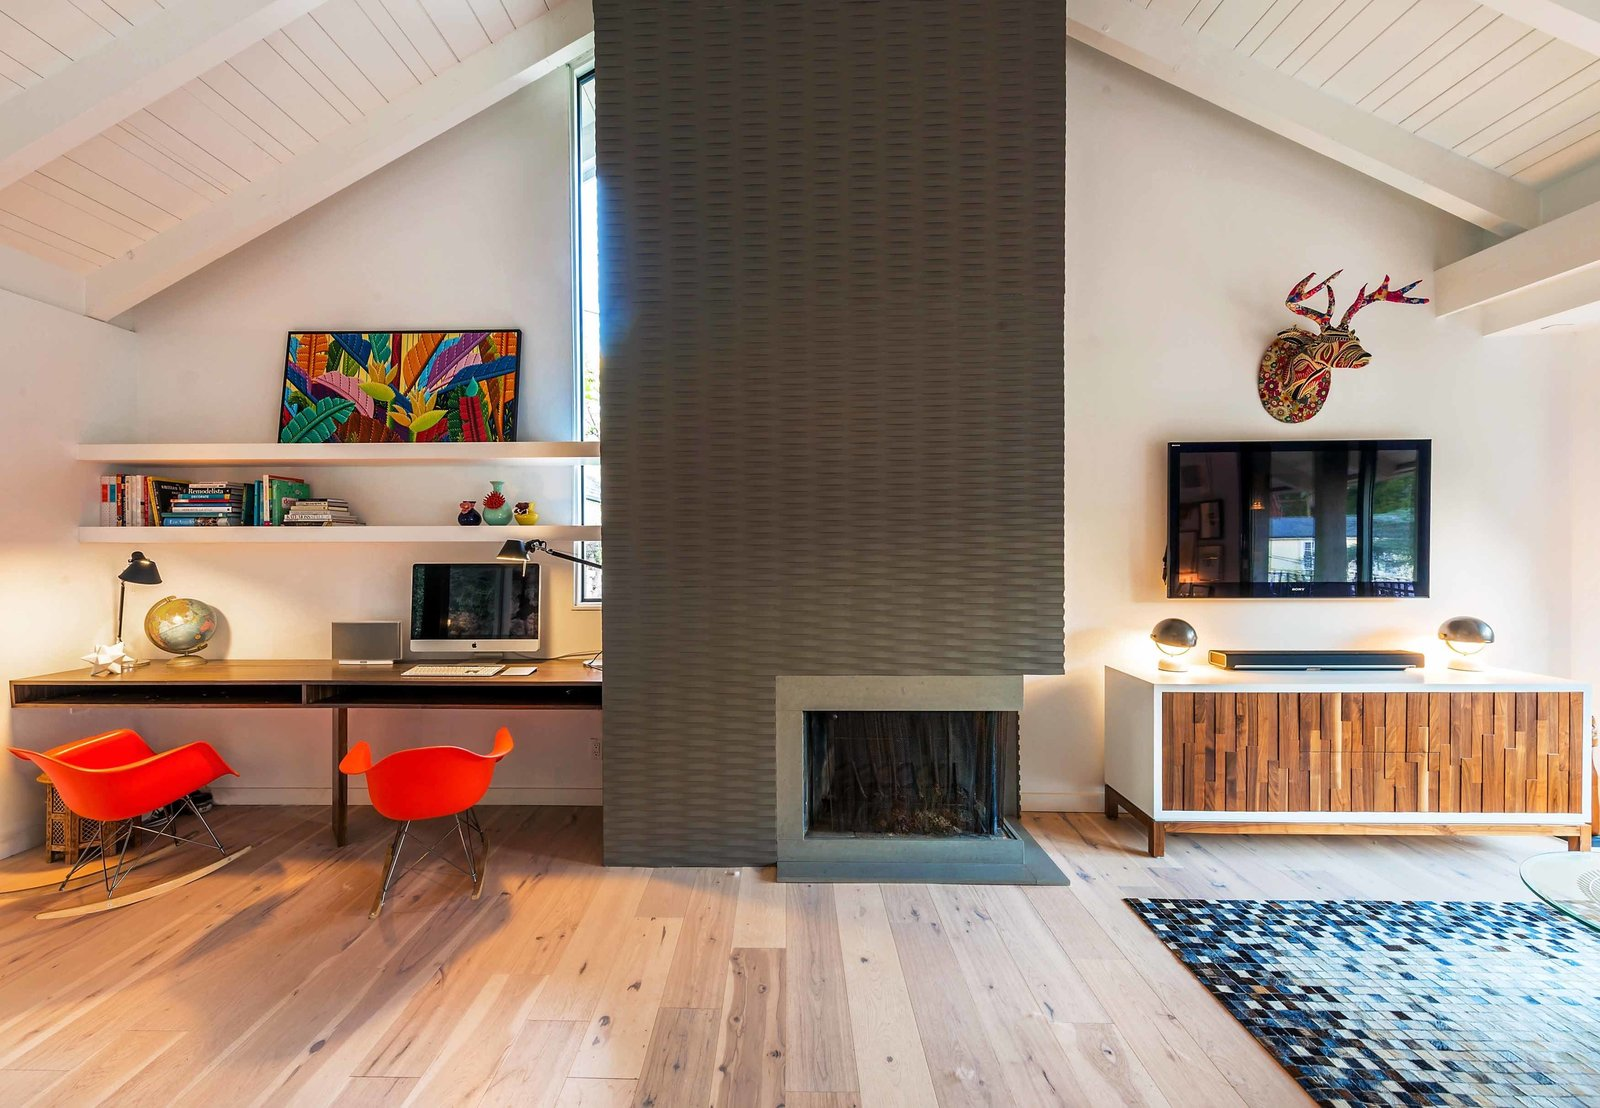 The fireplace is a custom-made, three-dimensional feature that stands in stark contrast to the soft woods and white walls that make up the rest of the room. The small office nook features a custom walnut built-in desk, painted white.  97+ Modern Fireplace Ideas by Dwell from Playful Materials Refresh a Dated Hollywood Home